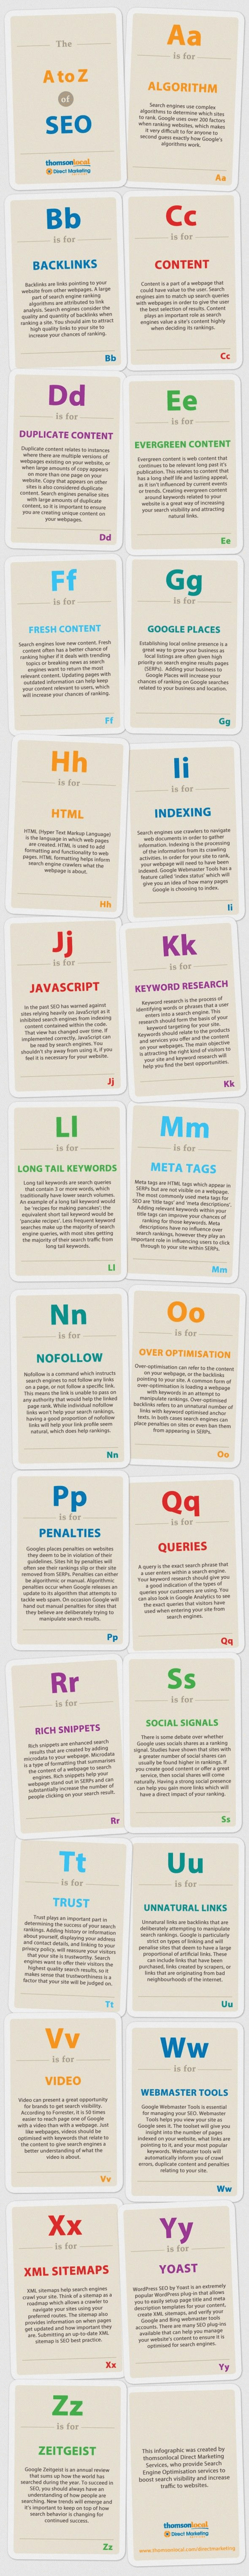 the-ultimate-a-z-of-seo-for-beginners